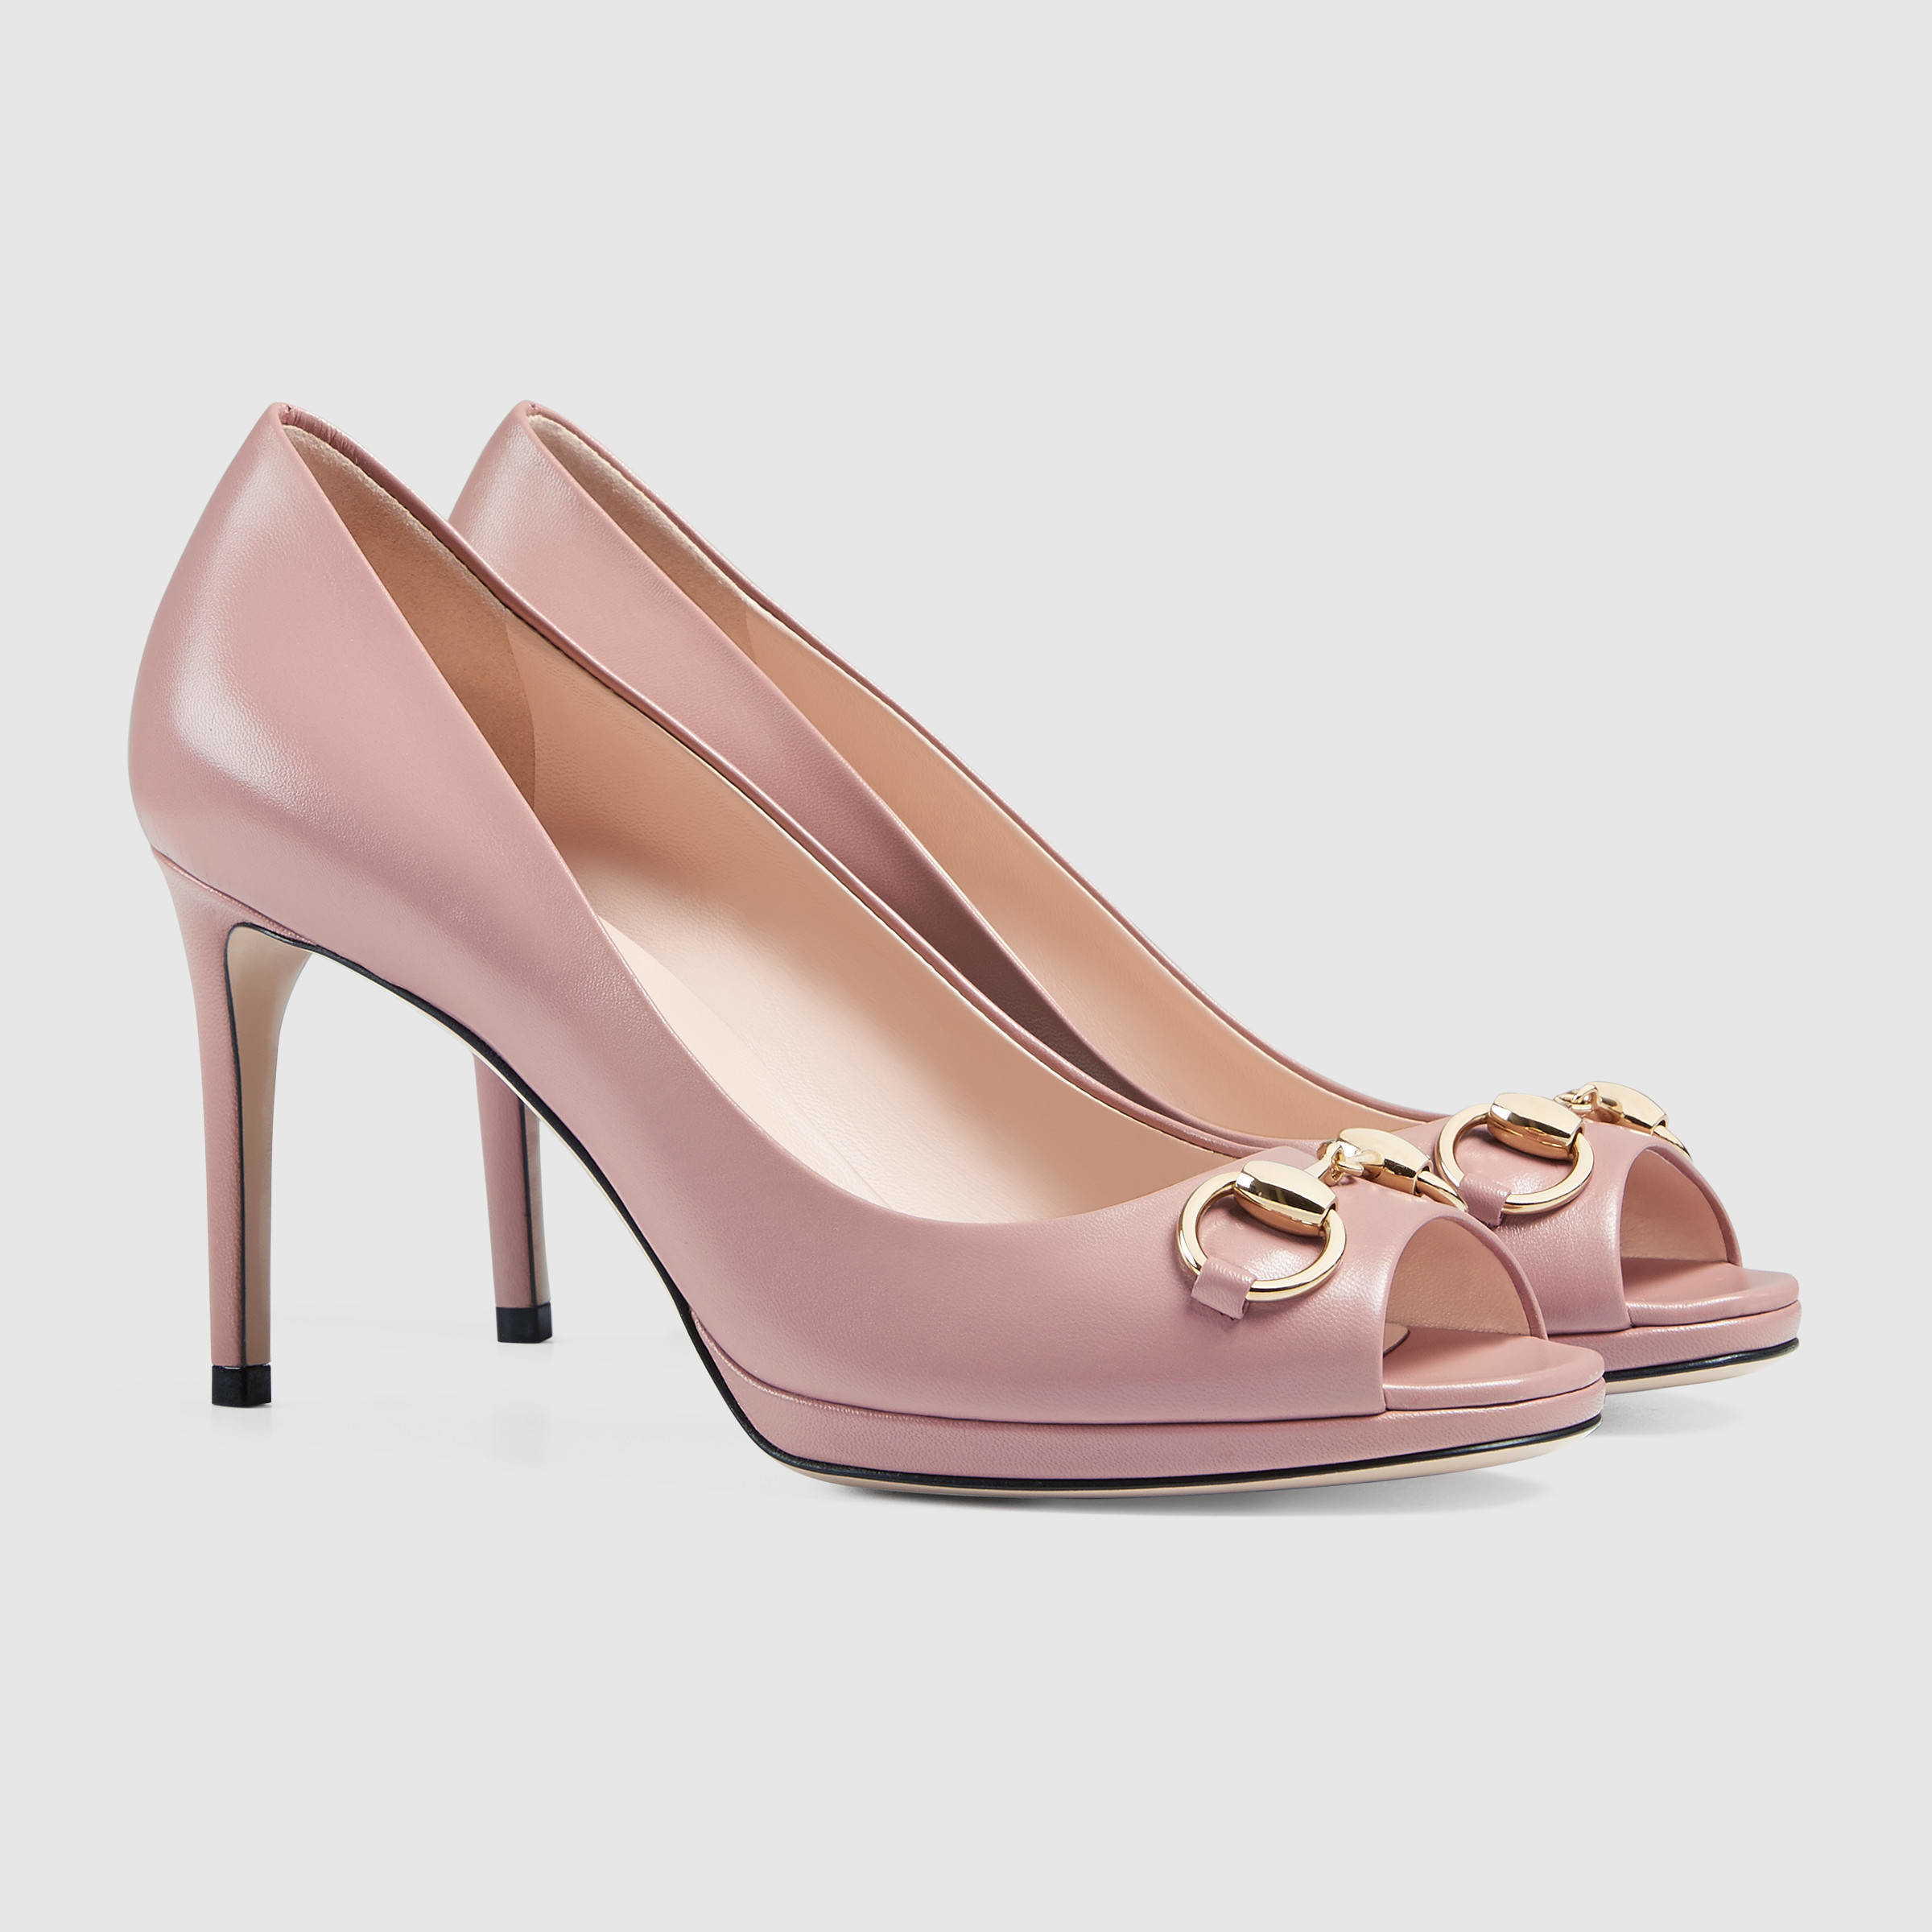 Lyst - Gucci Leather Mid-heel Pump in Pink